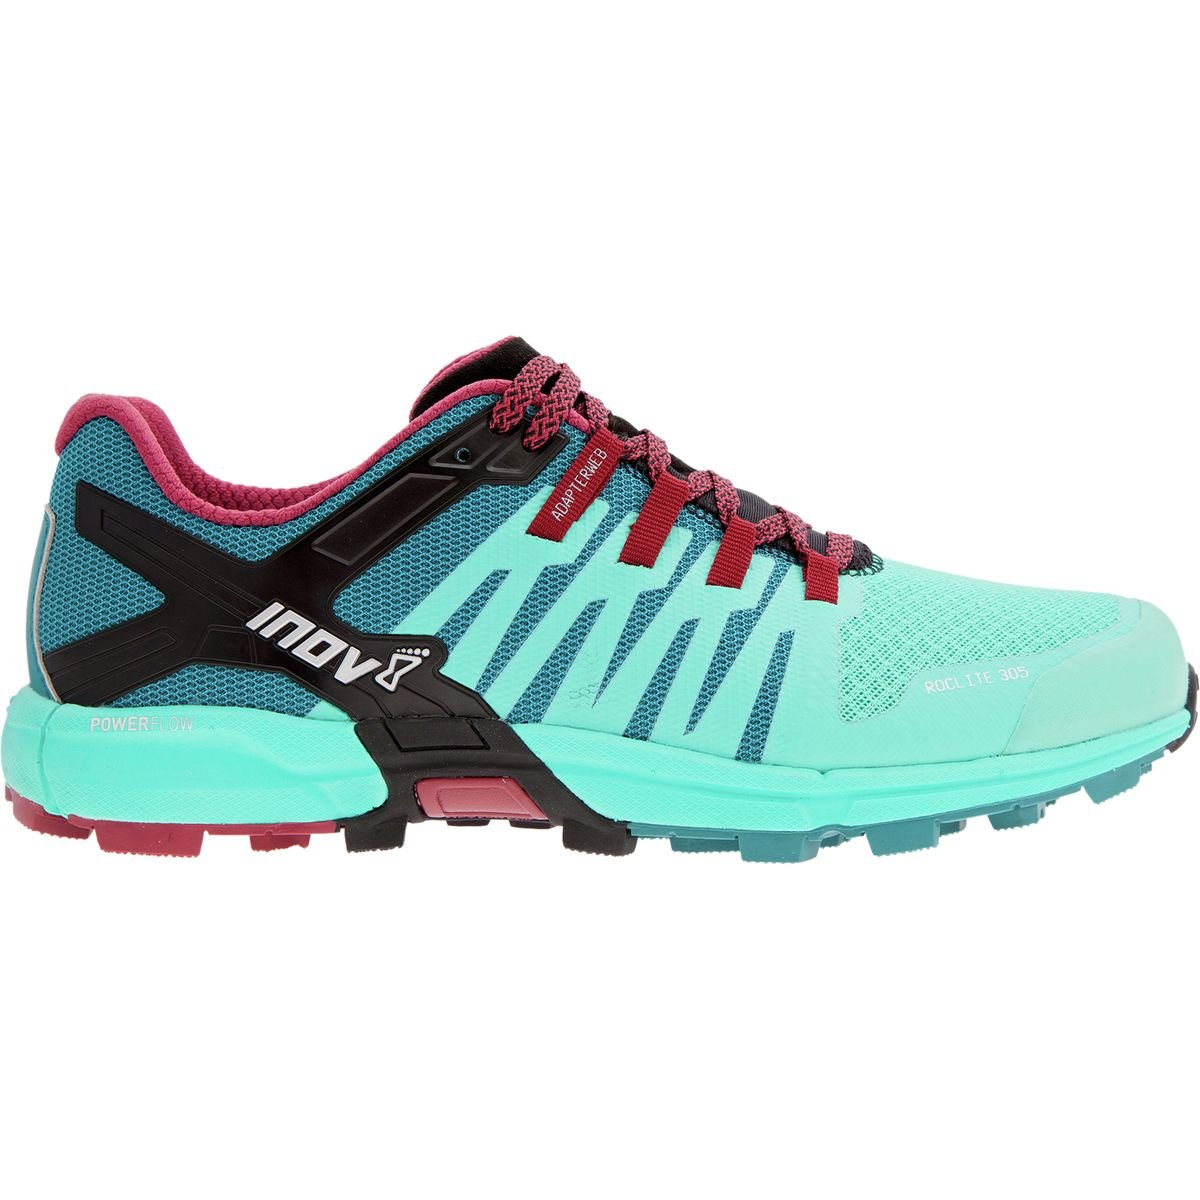 Inov8 Roclite 305 Women's Trail Running Shoes - SS17 - 7.5 - Blue